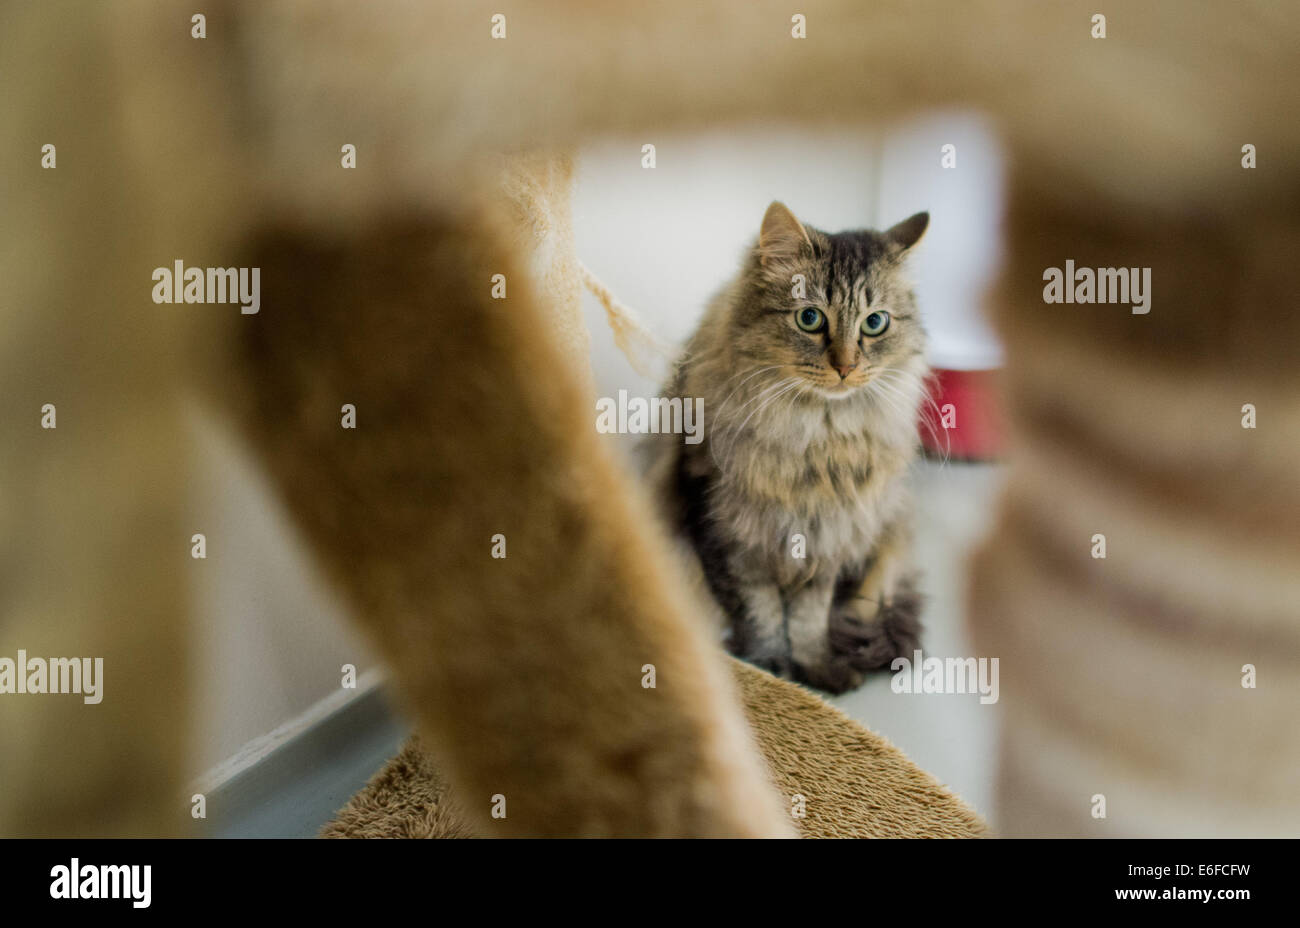 Hanover, Germany. 22nd Aug, 2014. A cat sits in a cat house in the animal centre in Hanover, Germany, 22 August - Stock Image